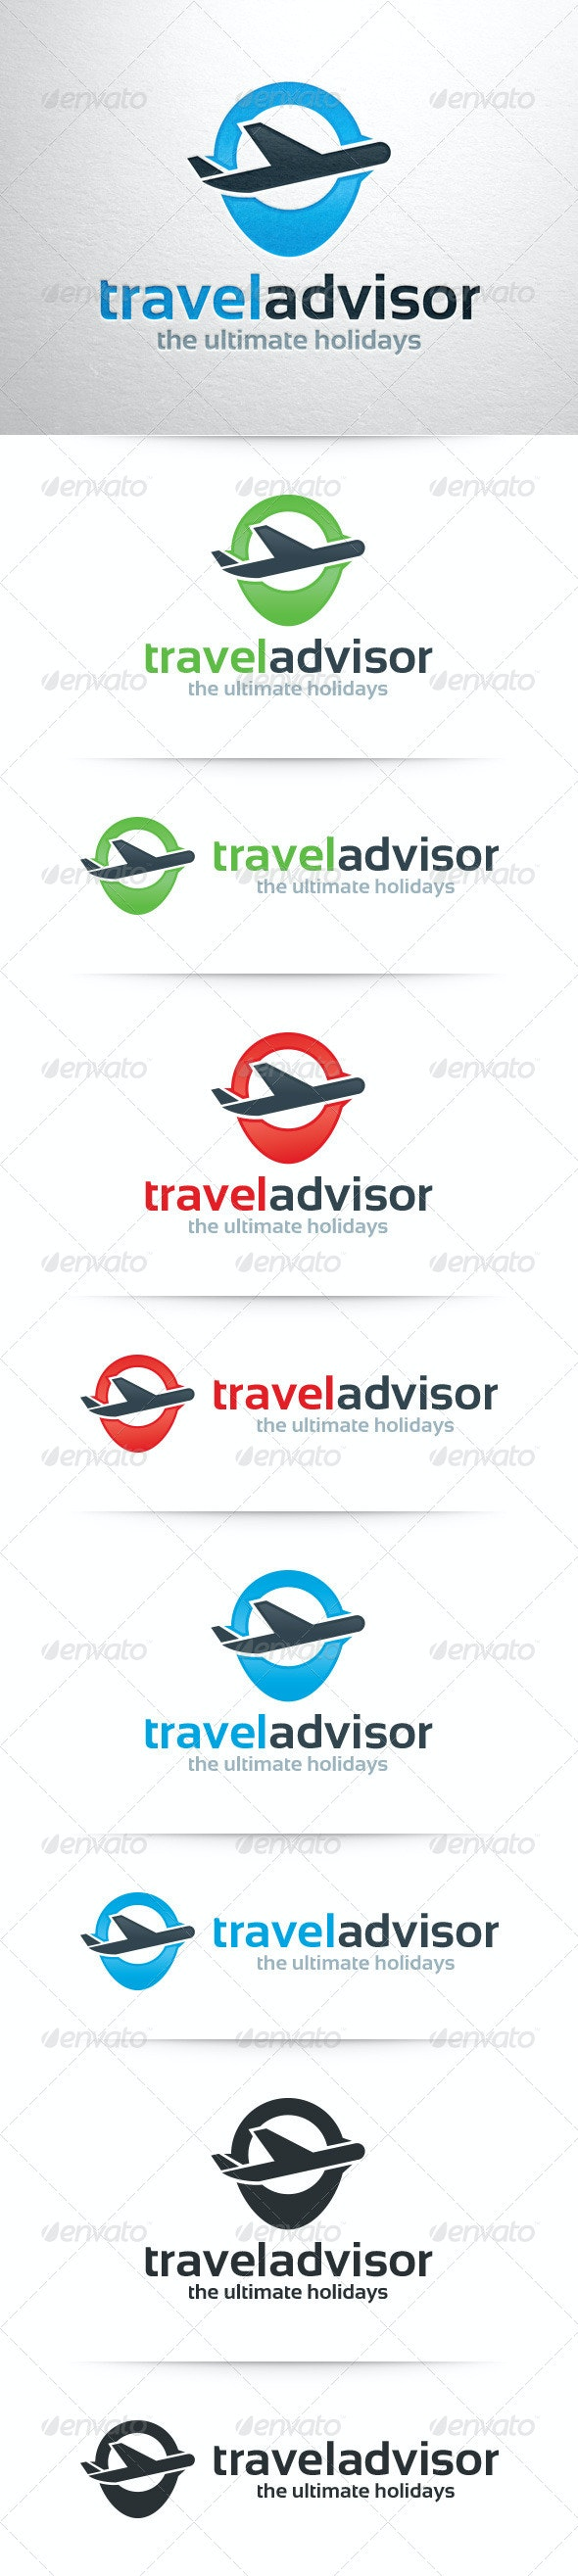 Travel Advisor Logo Template - Objects Logo Templates